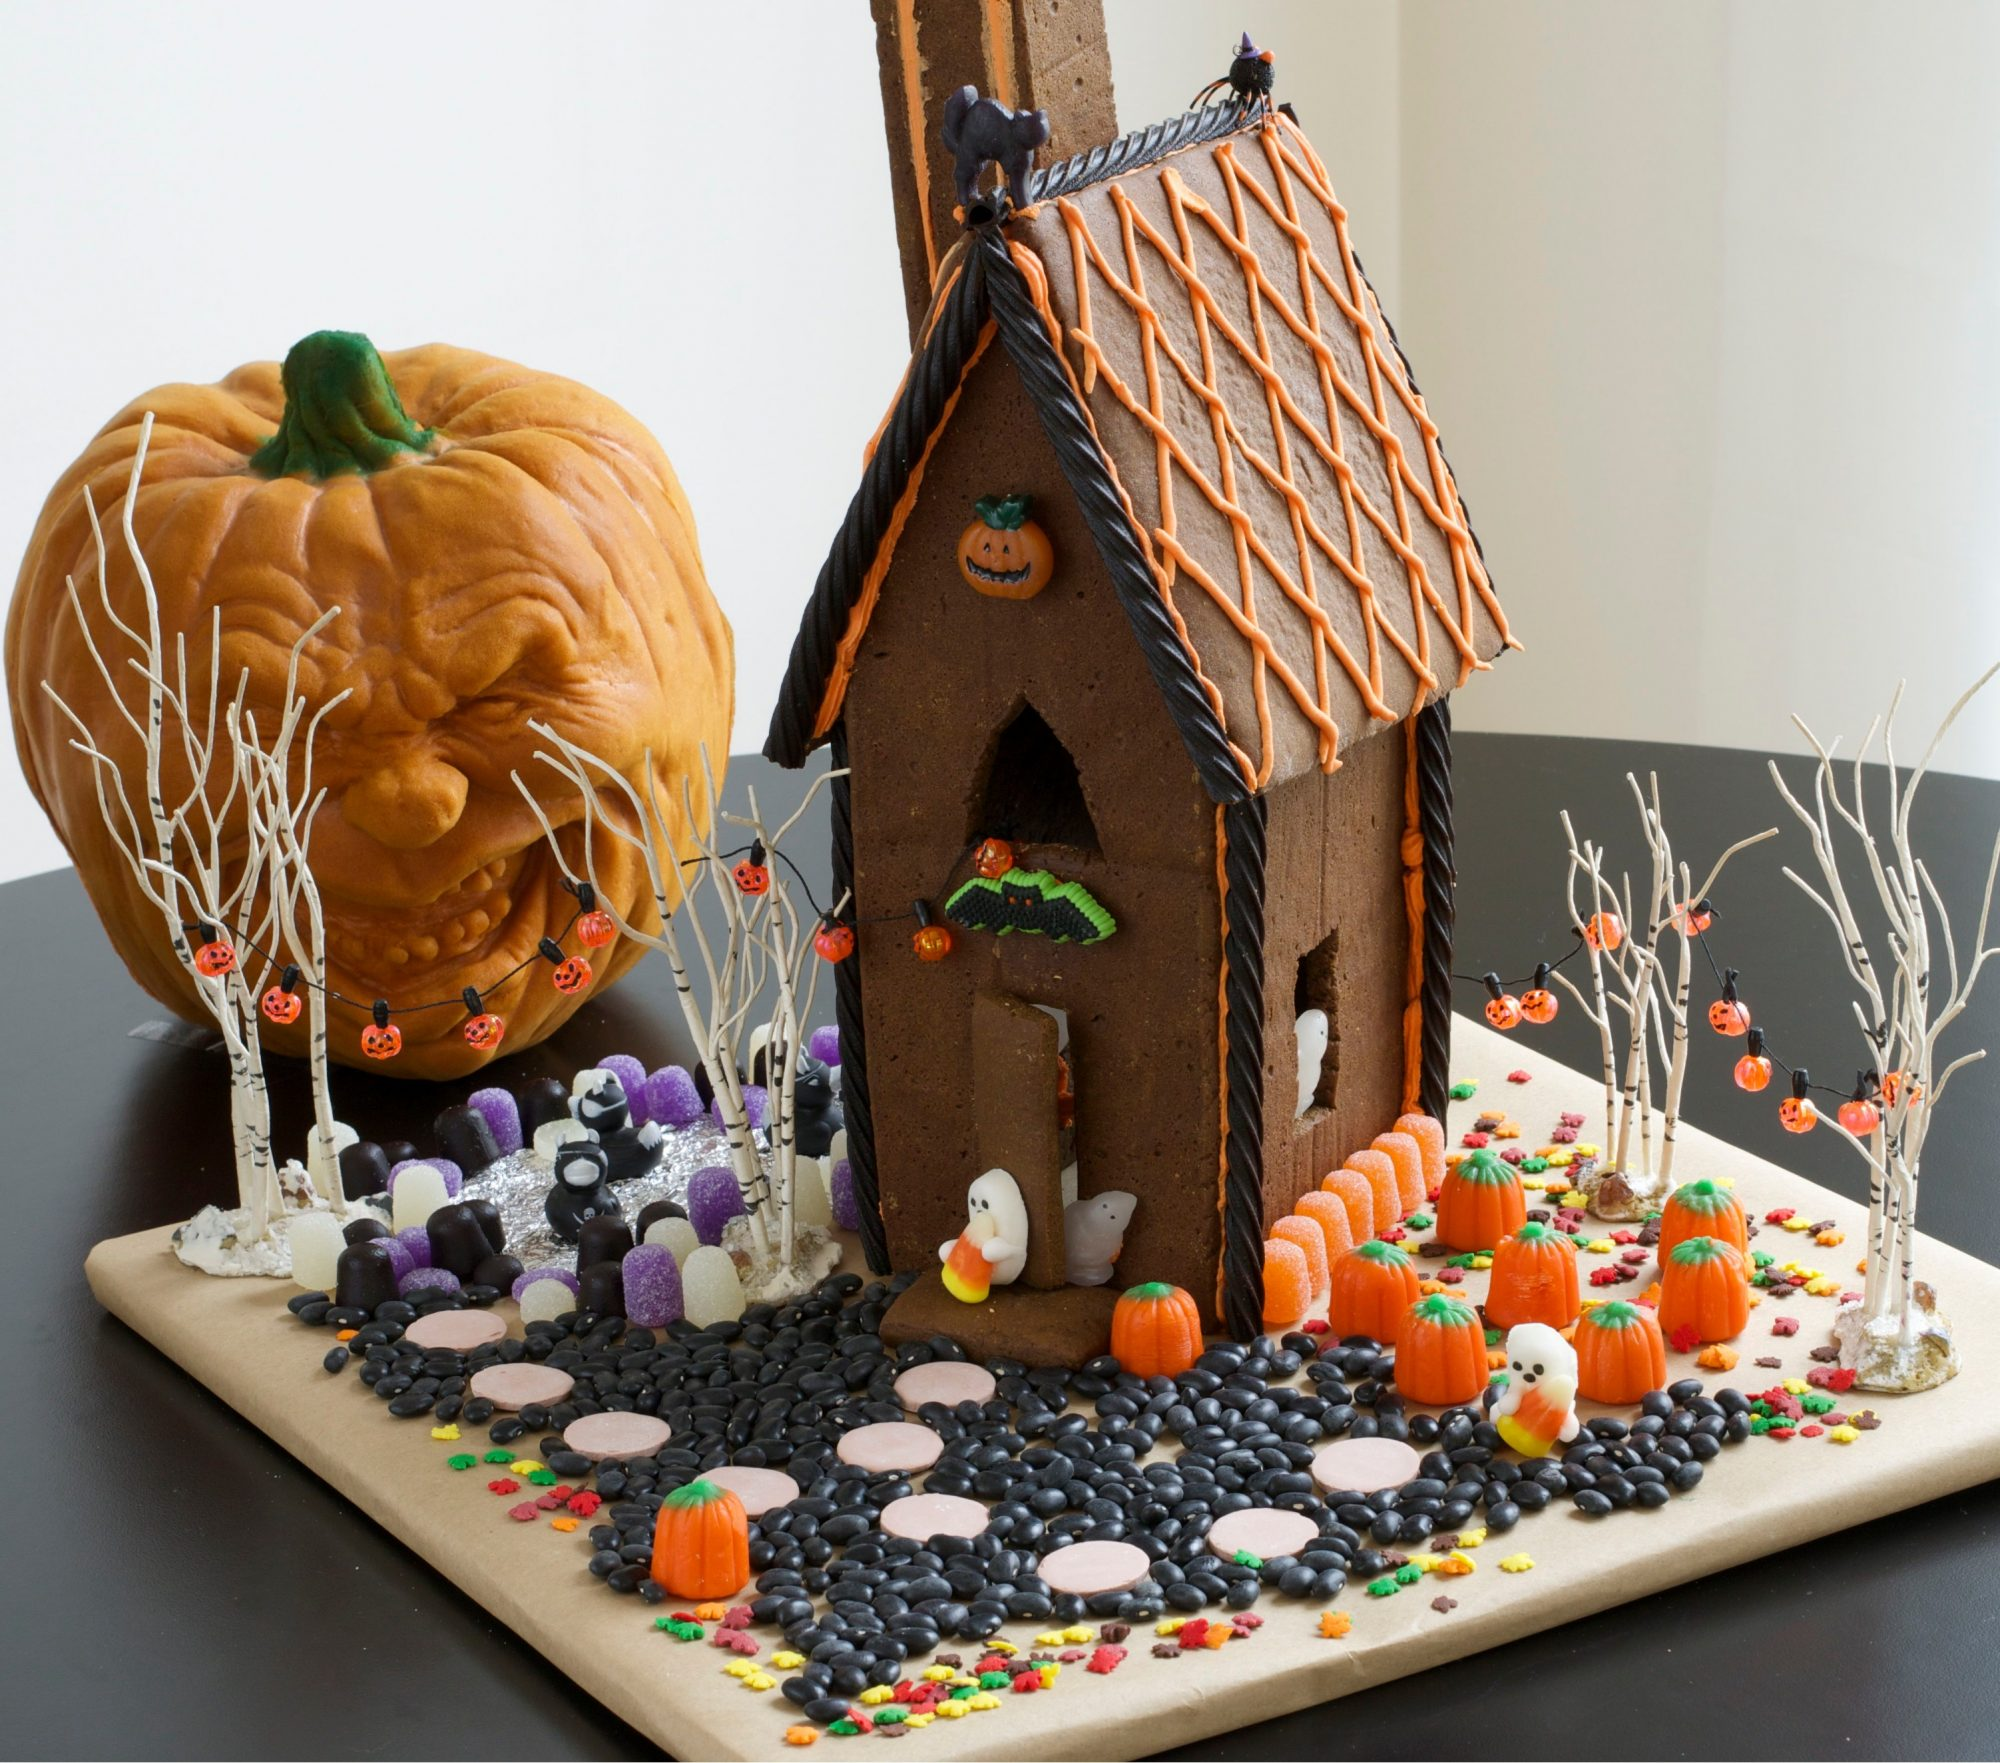 gingerbread house decorated for halloween